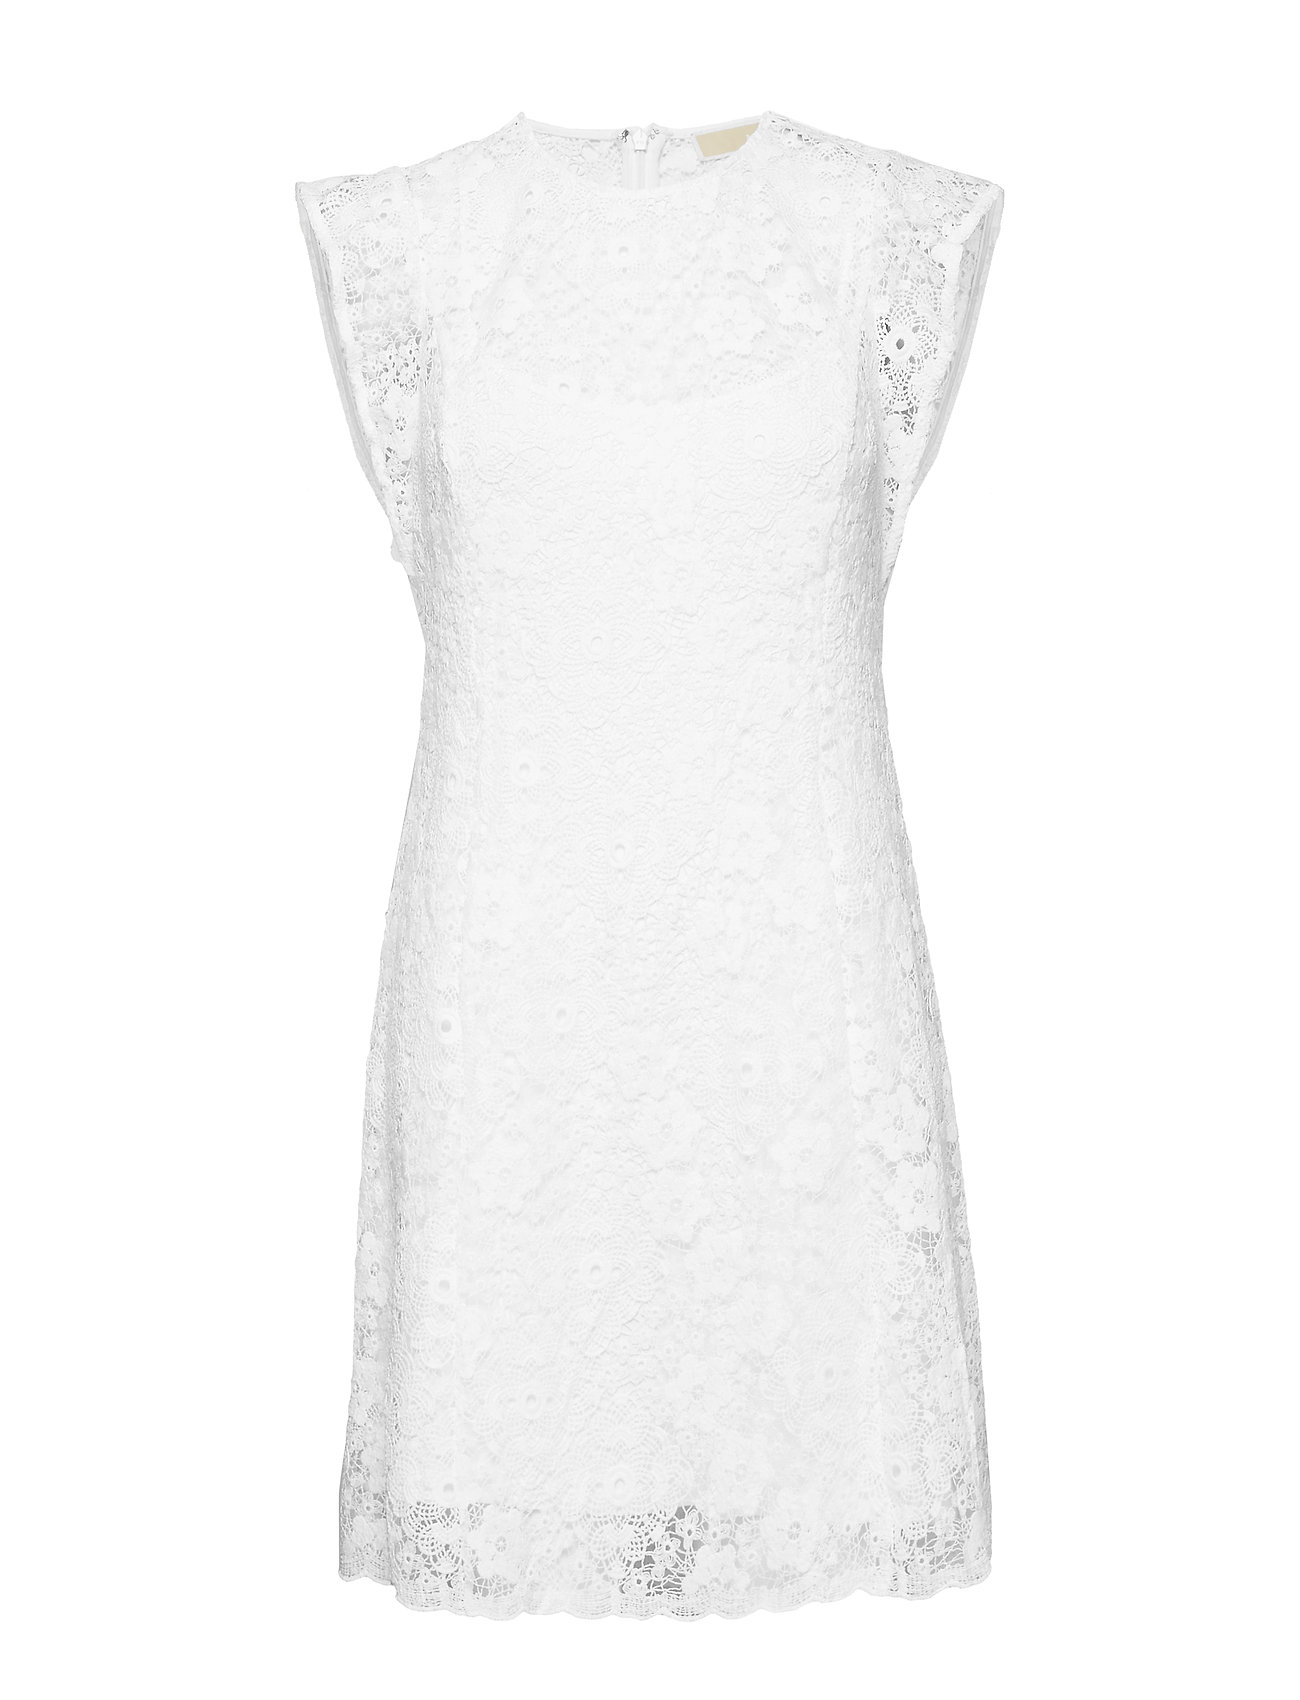 Ornate Kors Crochet DresswhiteMichael Crochet Ornate 4jRLA5